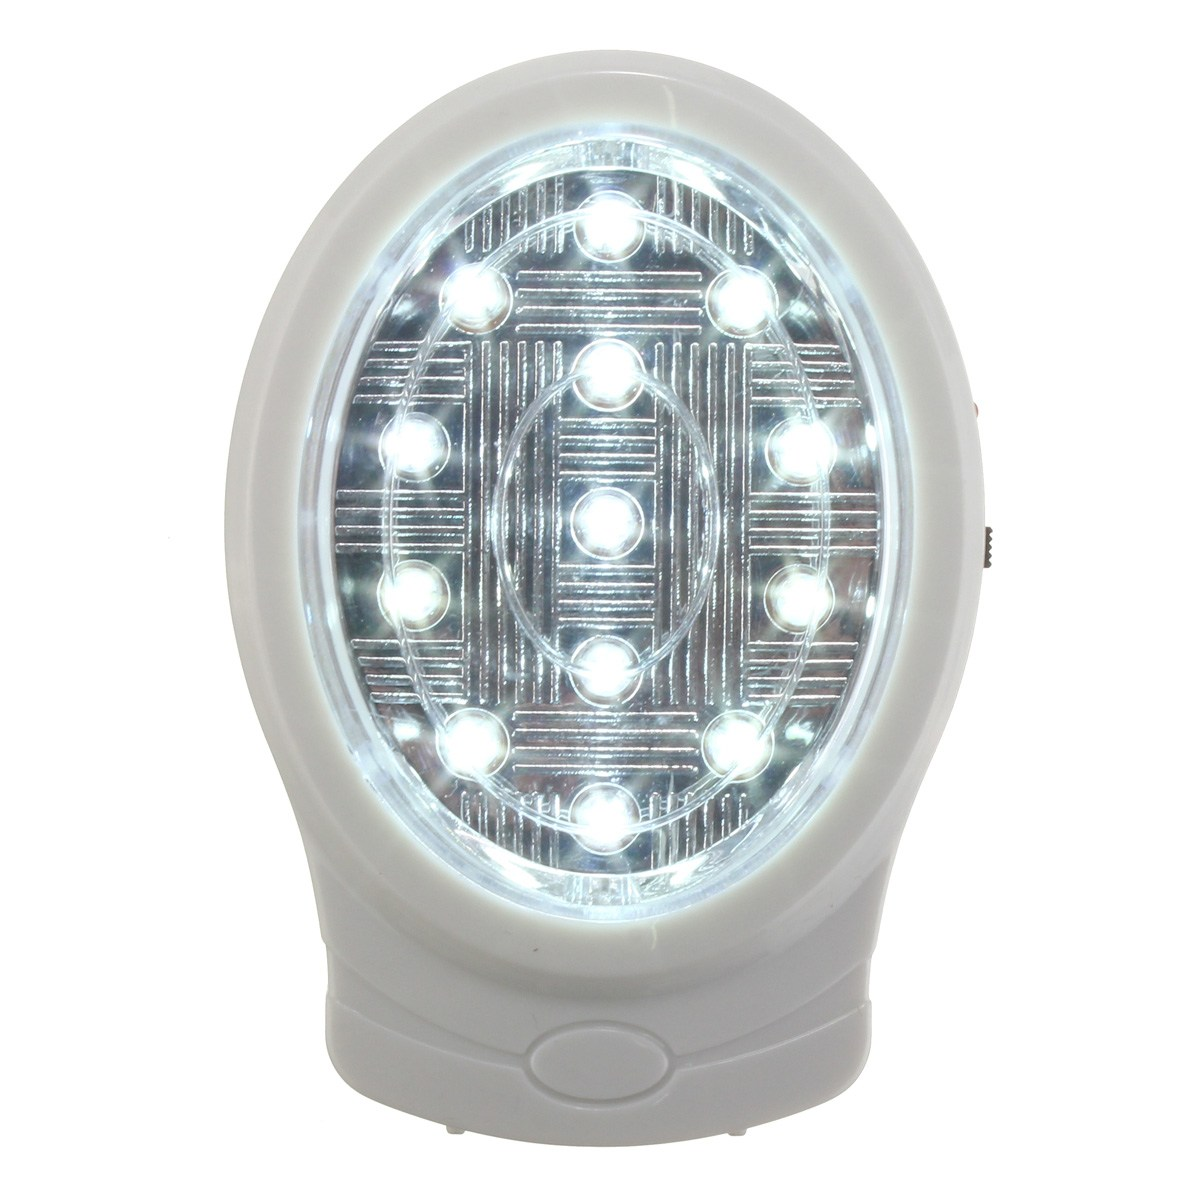 AC110-240V 2W 13 LED Rechargeable Emergency Light Automatic Power Failure Outage Lighting Lamp Bulb